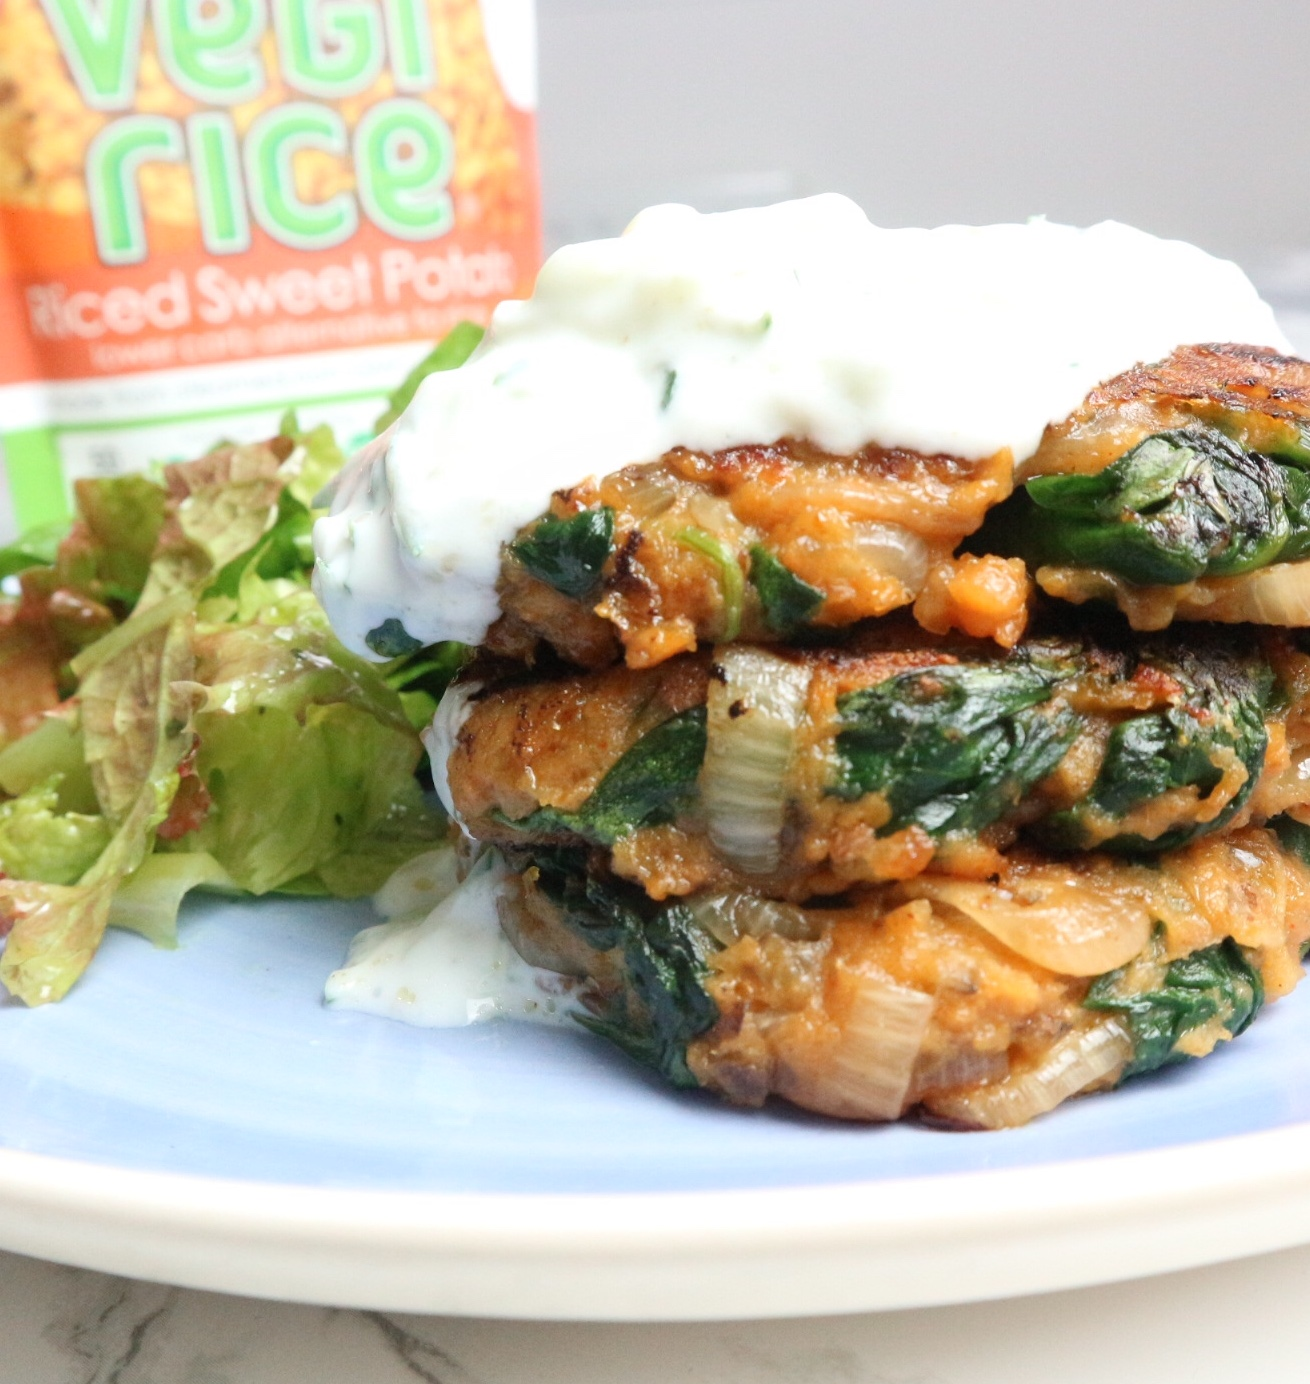 Sweet potato, onion and spinach fritters